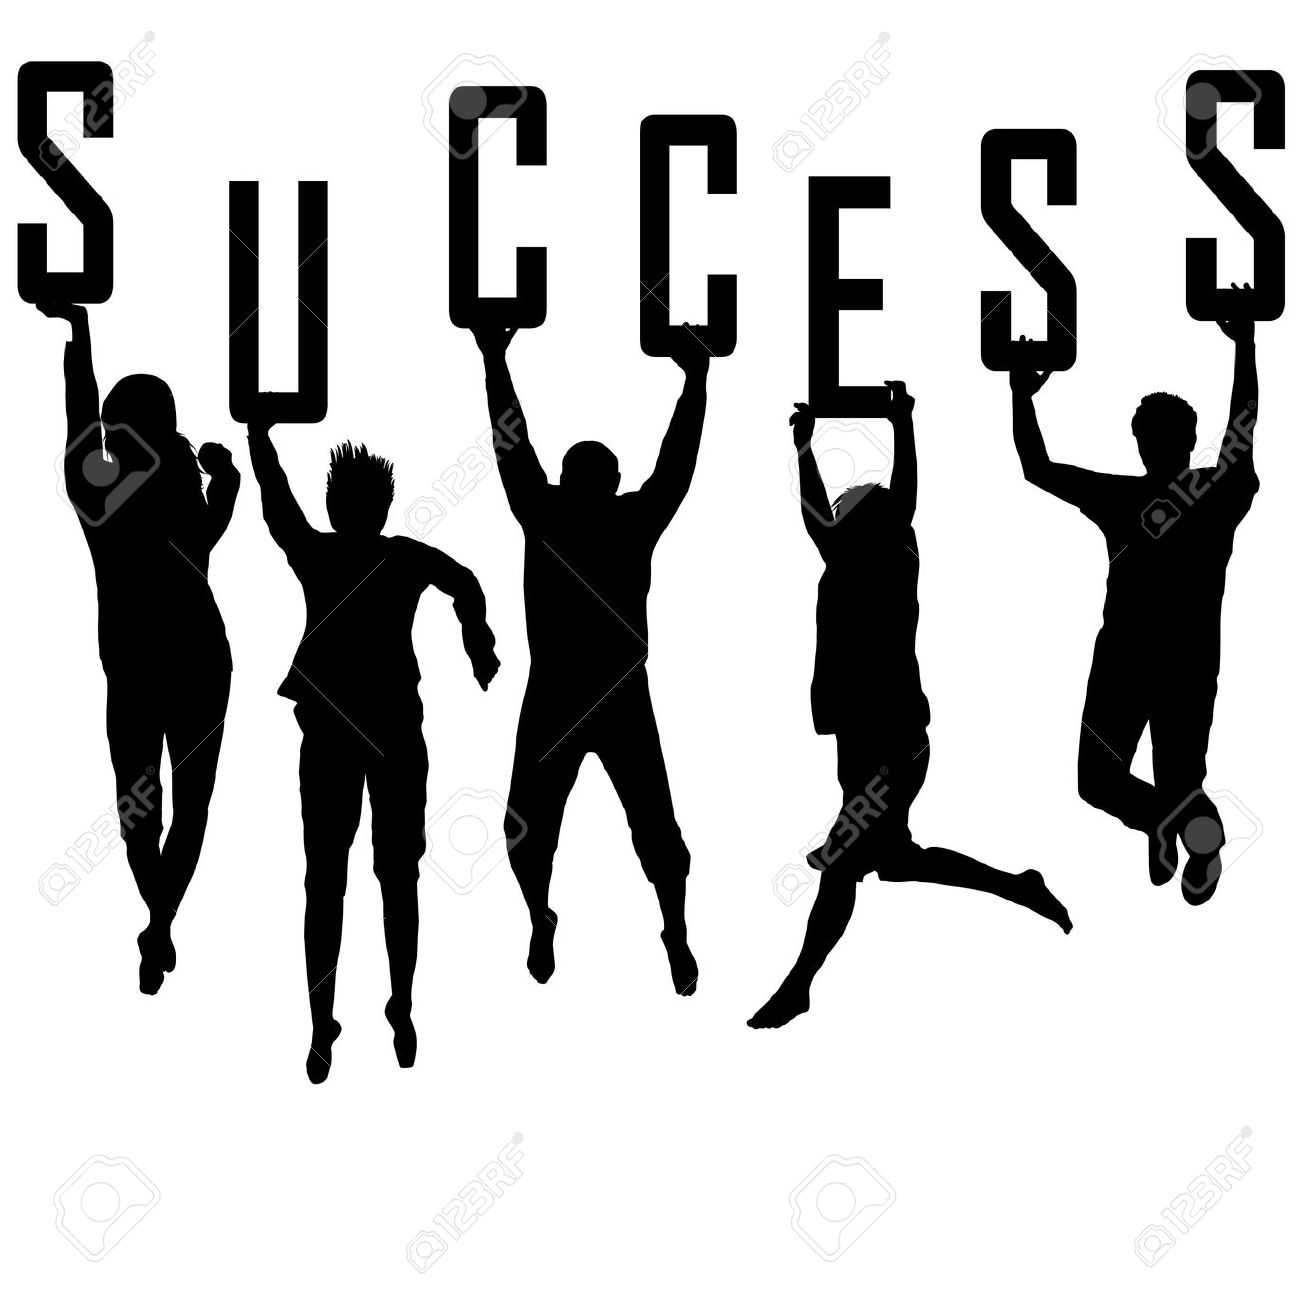 Success clipart jpg